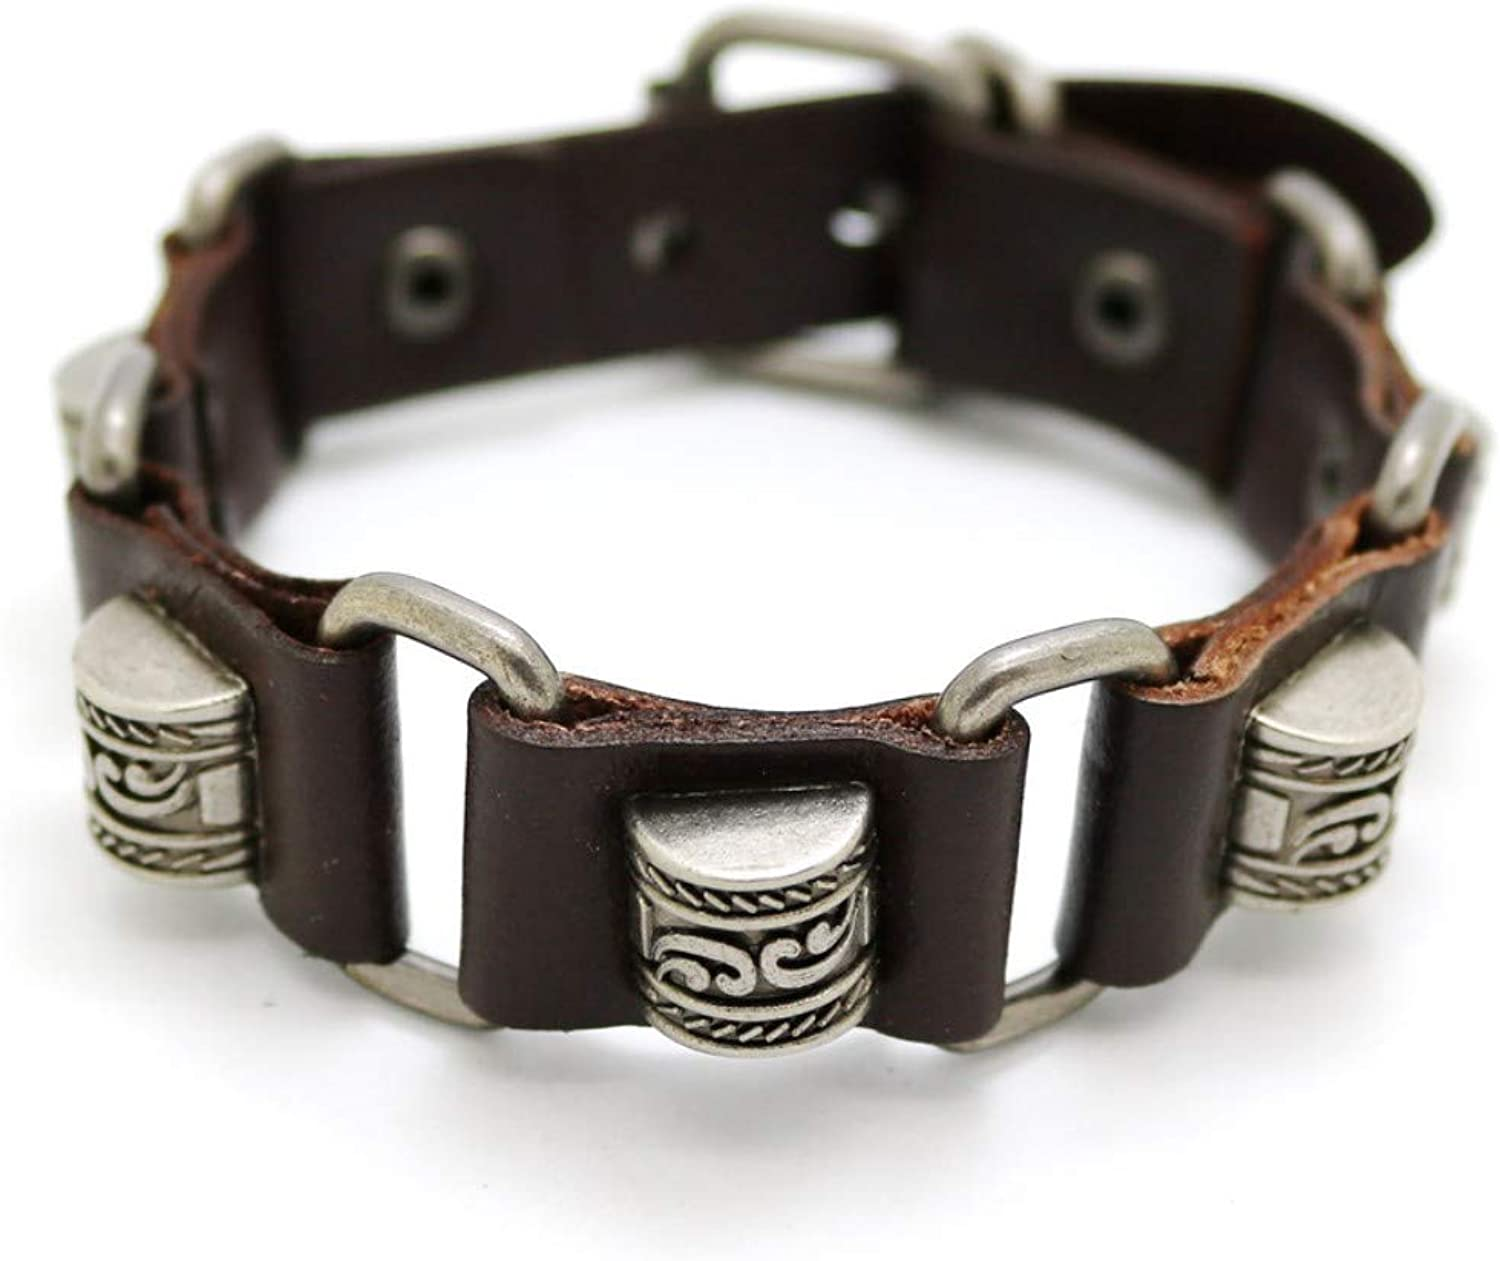 Bracelet Men,Accessories for Men and Women and Retro Casual Brown Bracelets Men and Women Punk Bracelet Bracelet Fashion Jewelry Bracelets